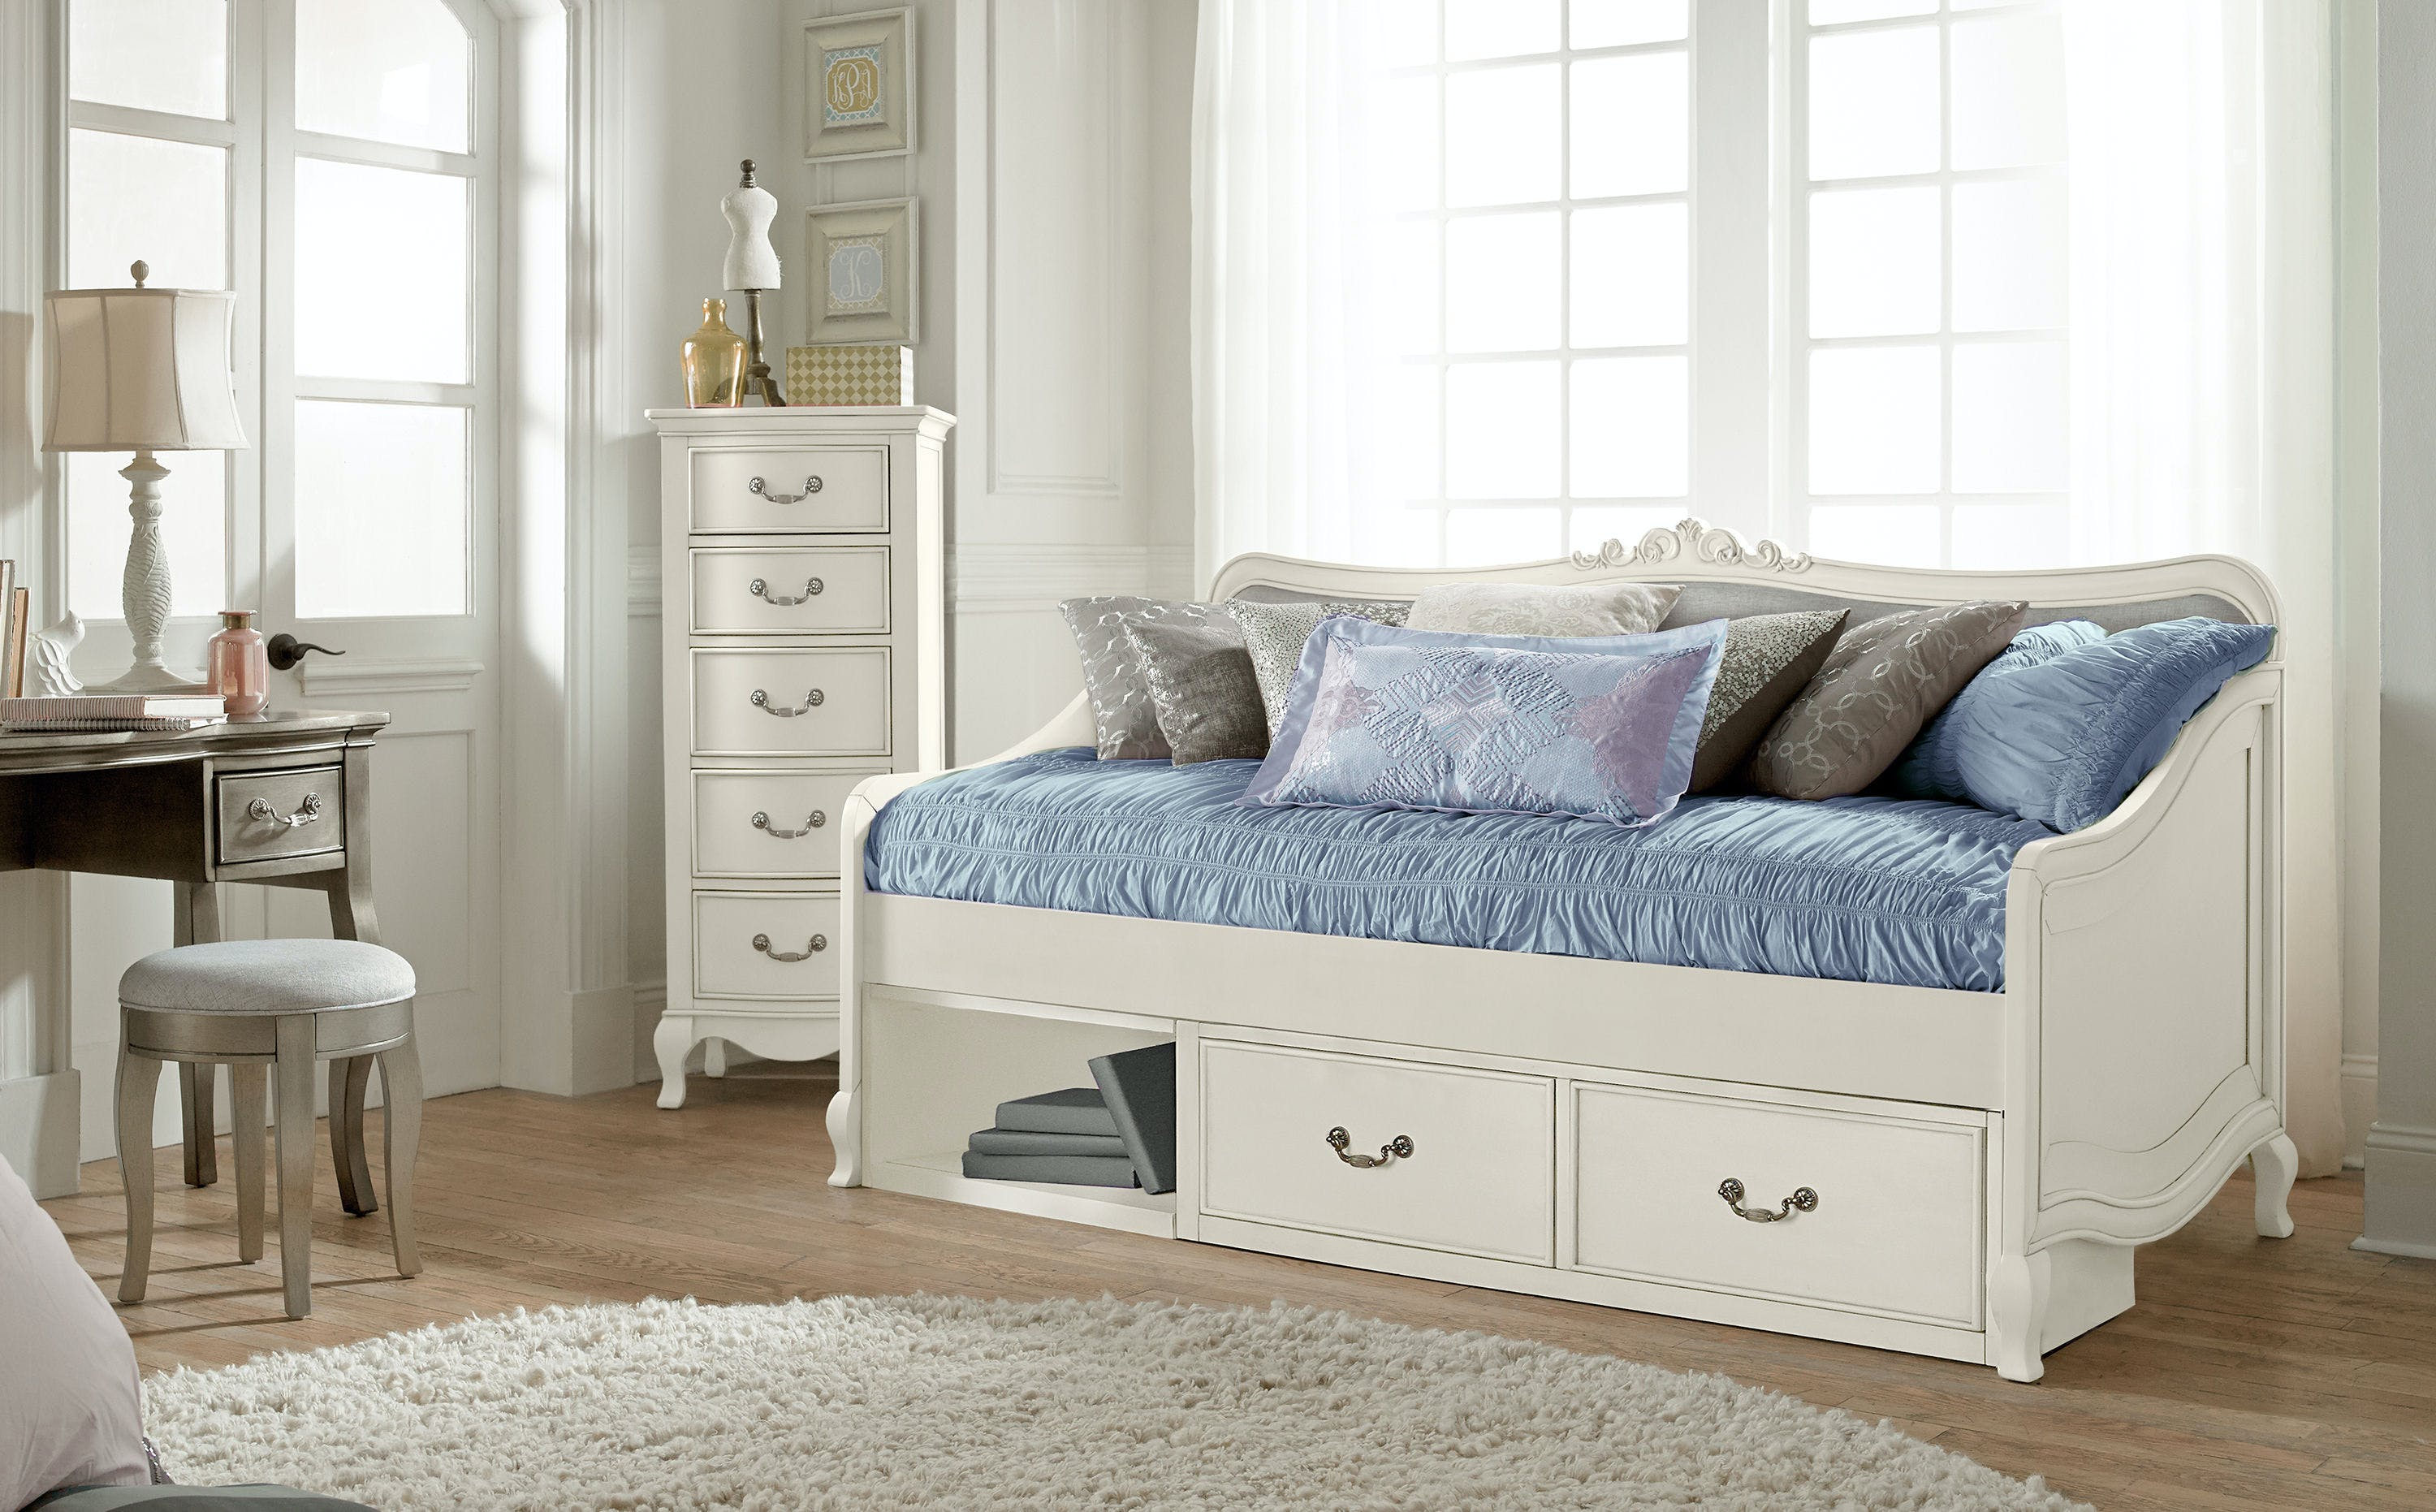 Hillsdale Kids And Teen Youth Kensington Elizabeth Daybed With Storage 20040ns Turner Furniture